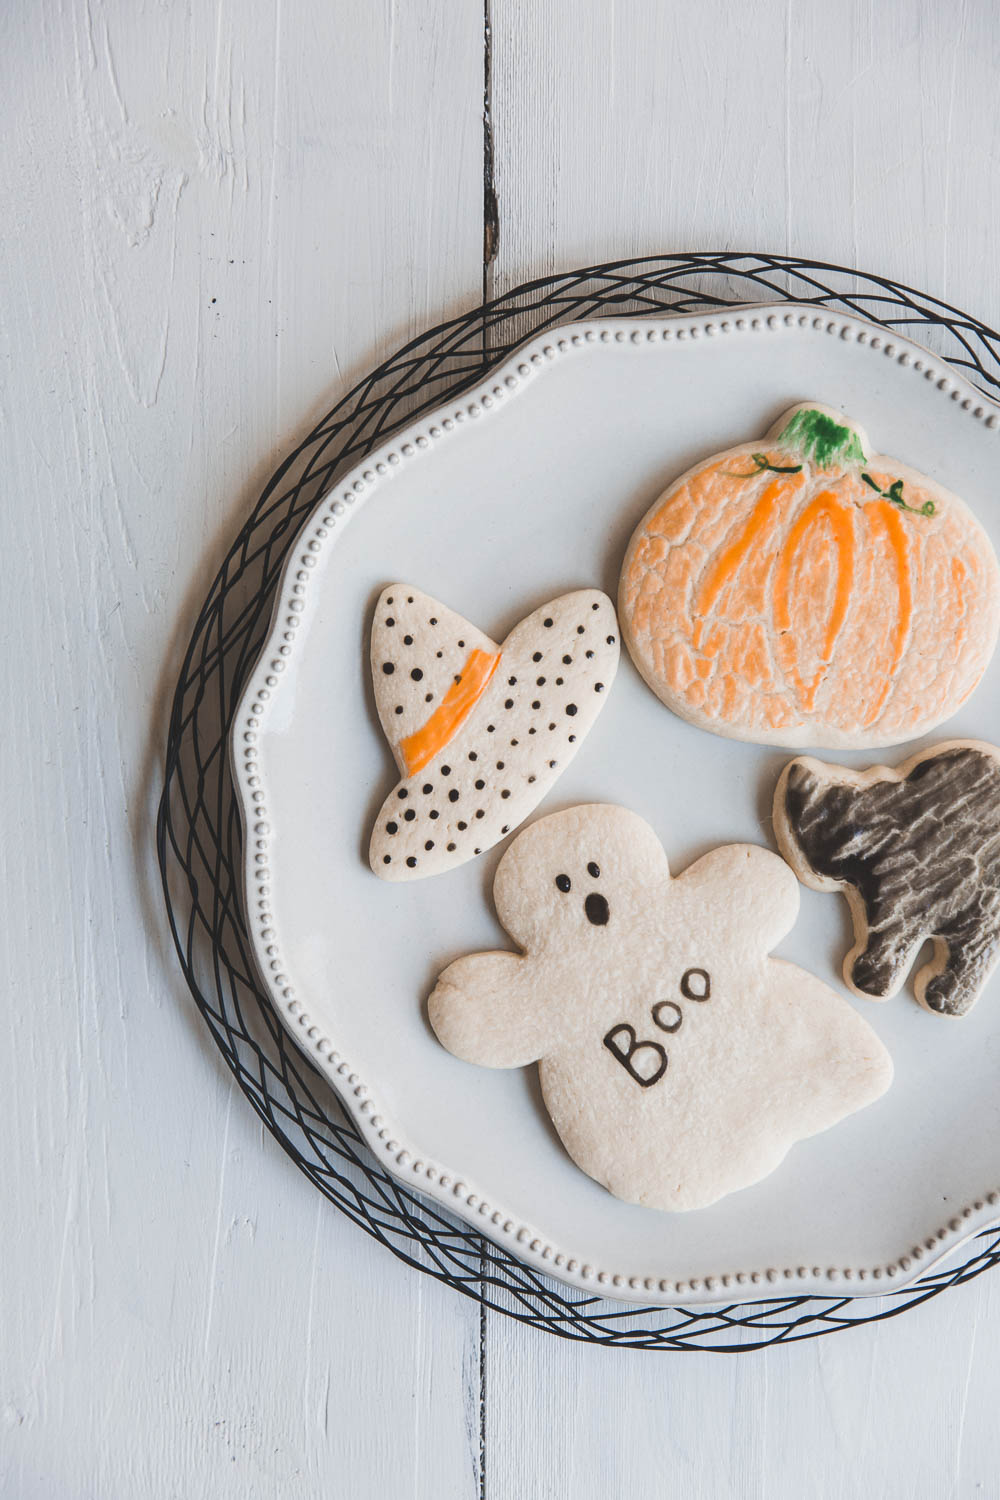 Simply decorated Halloween cookies